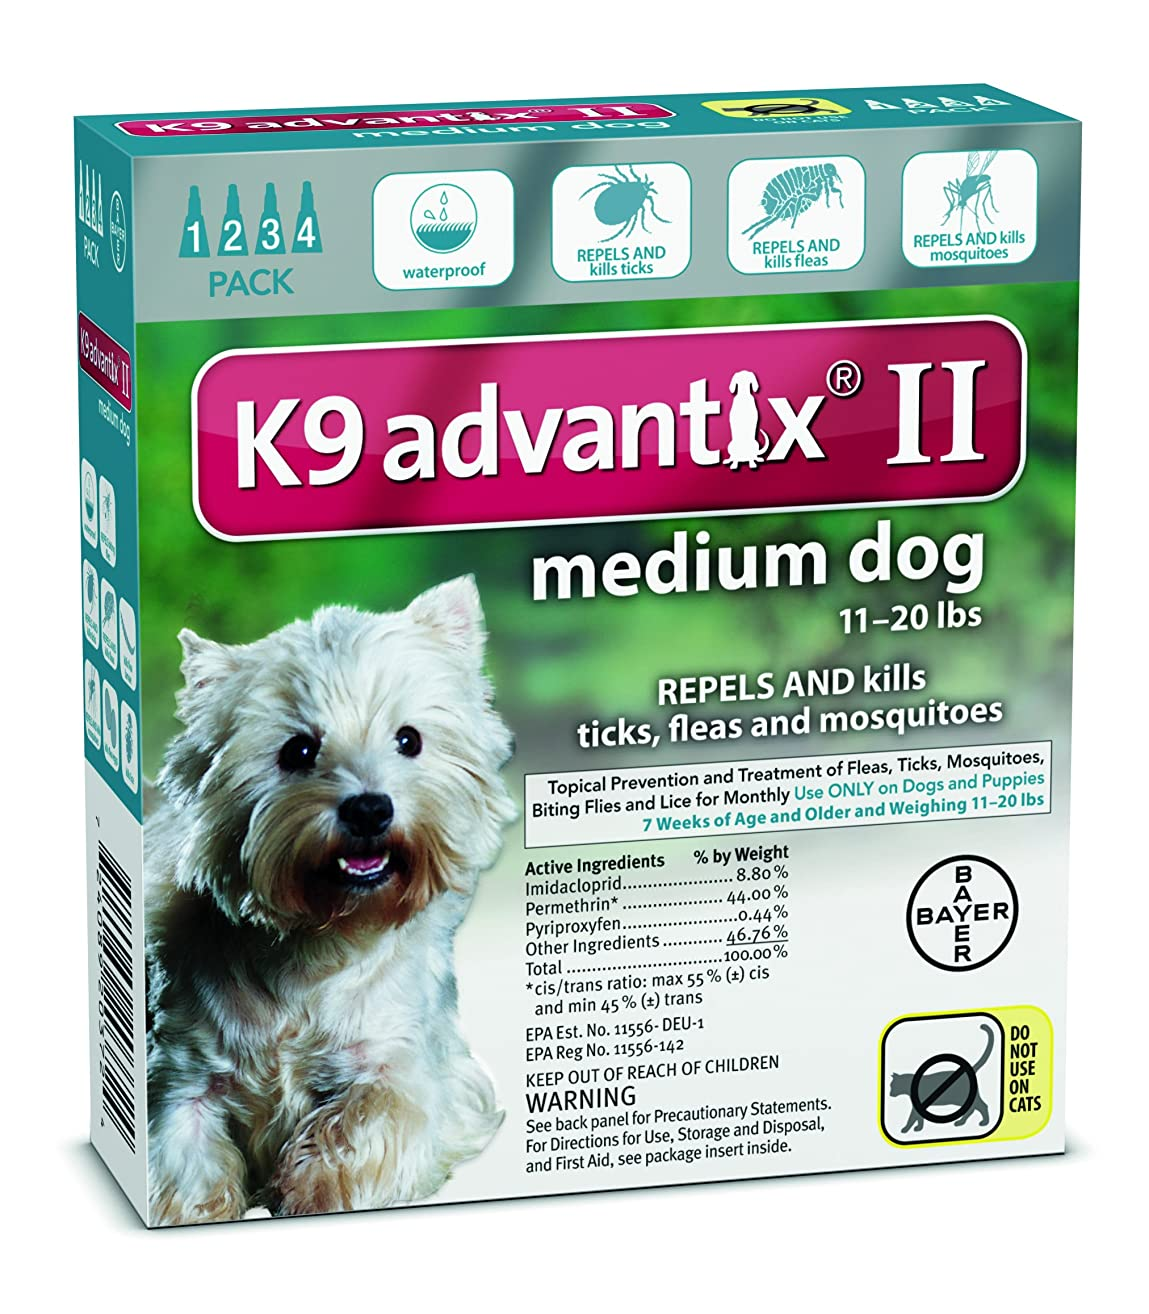 New - For Dogs 10-22 Lbs. 4 Month Supply by Advantix